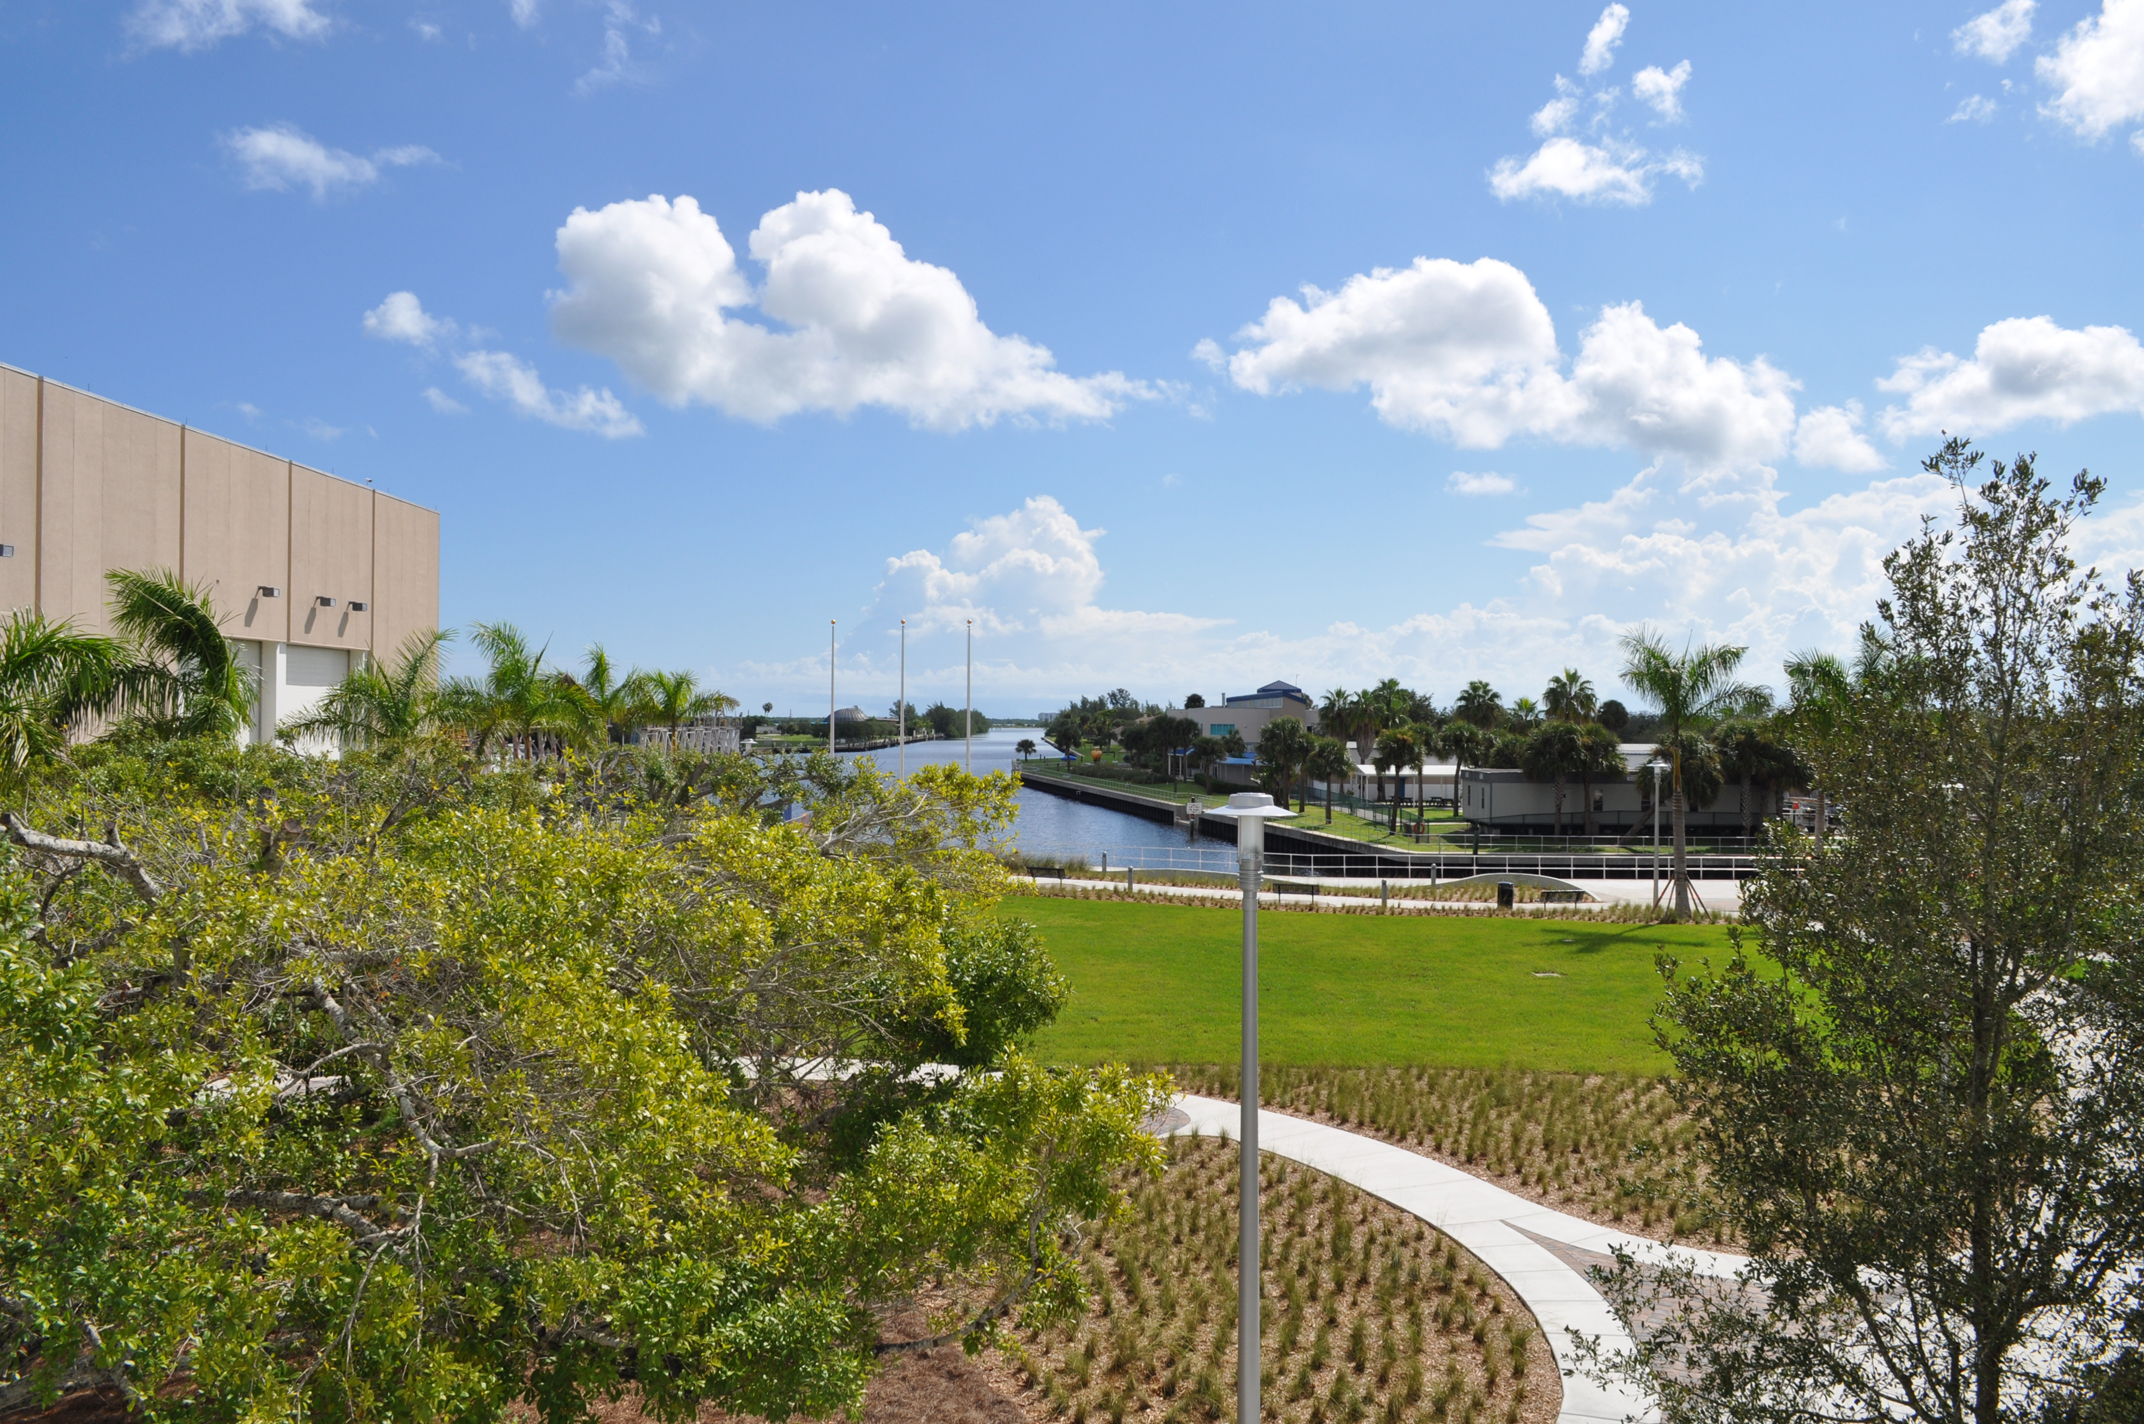 Harbor Branch Oceanographic Institute at FAU Research Laboratory II Confrence Room View.JPG